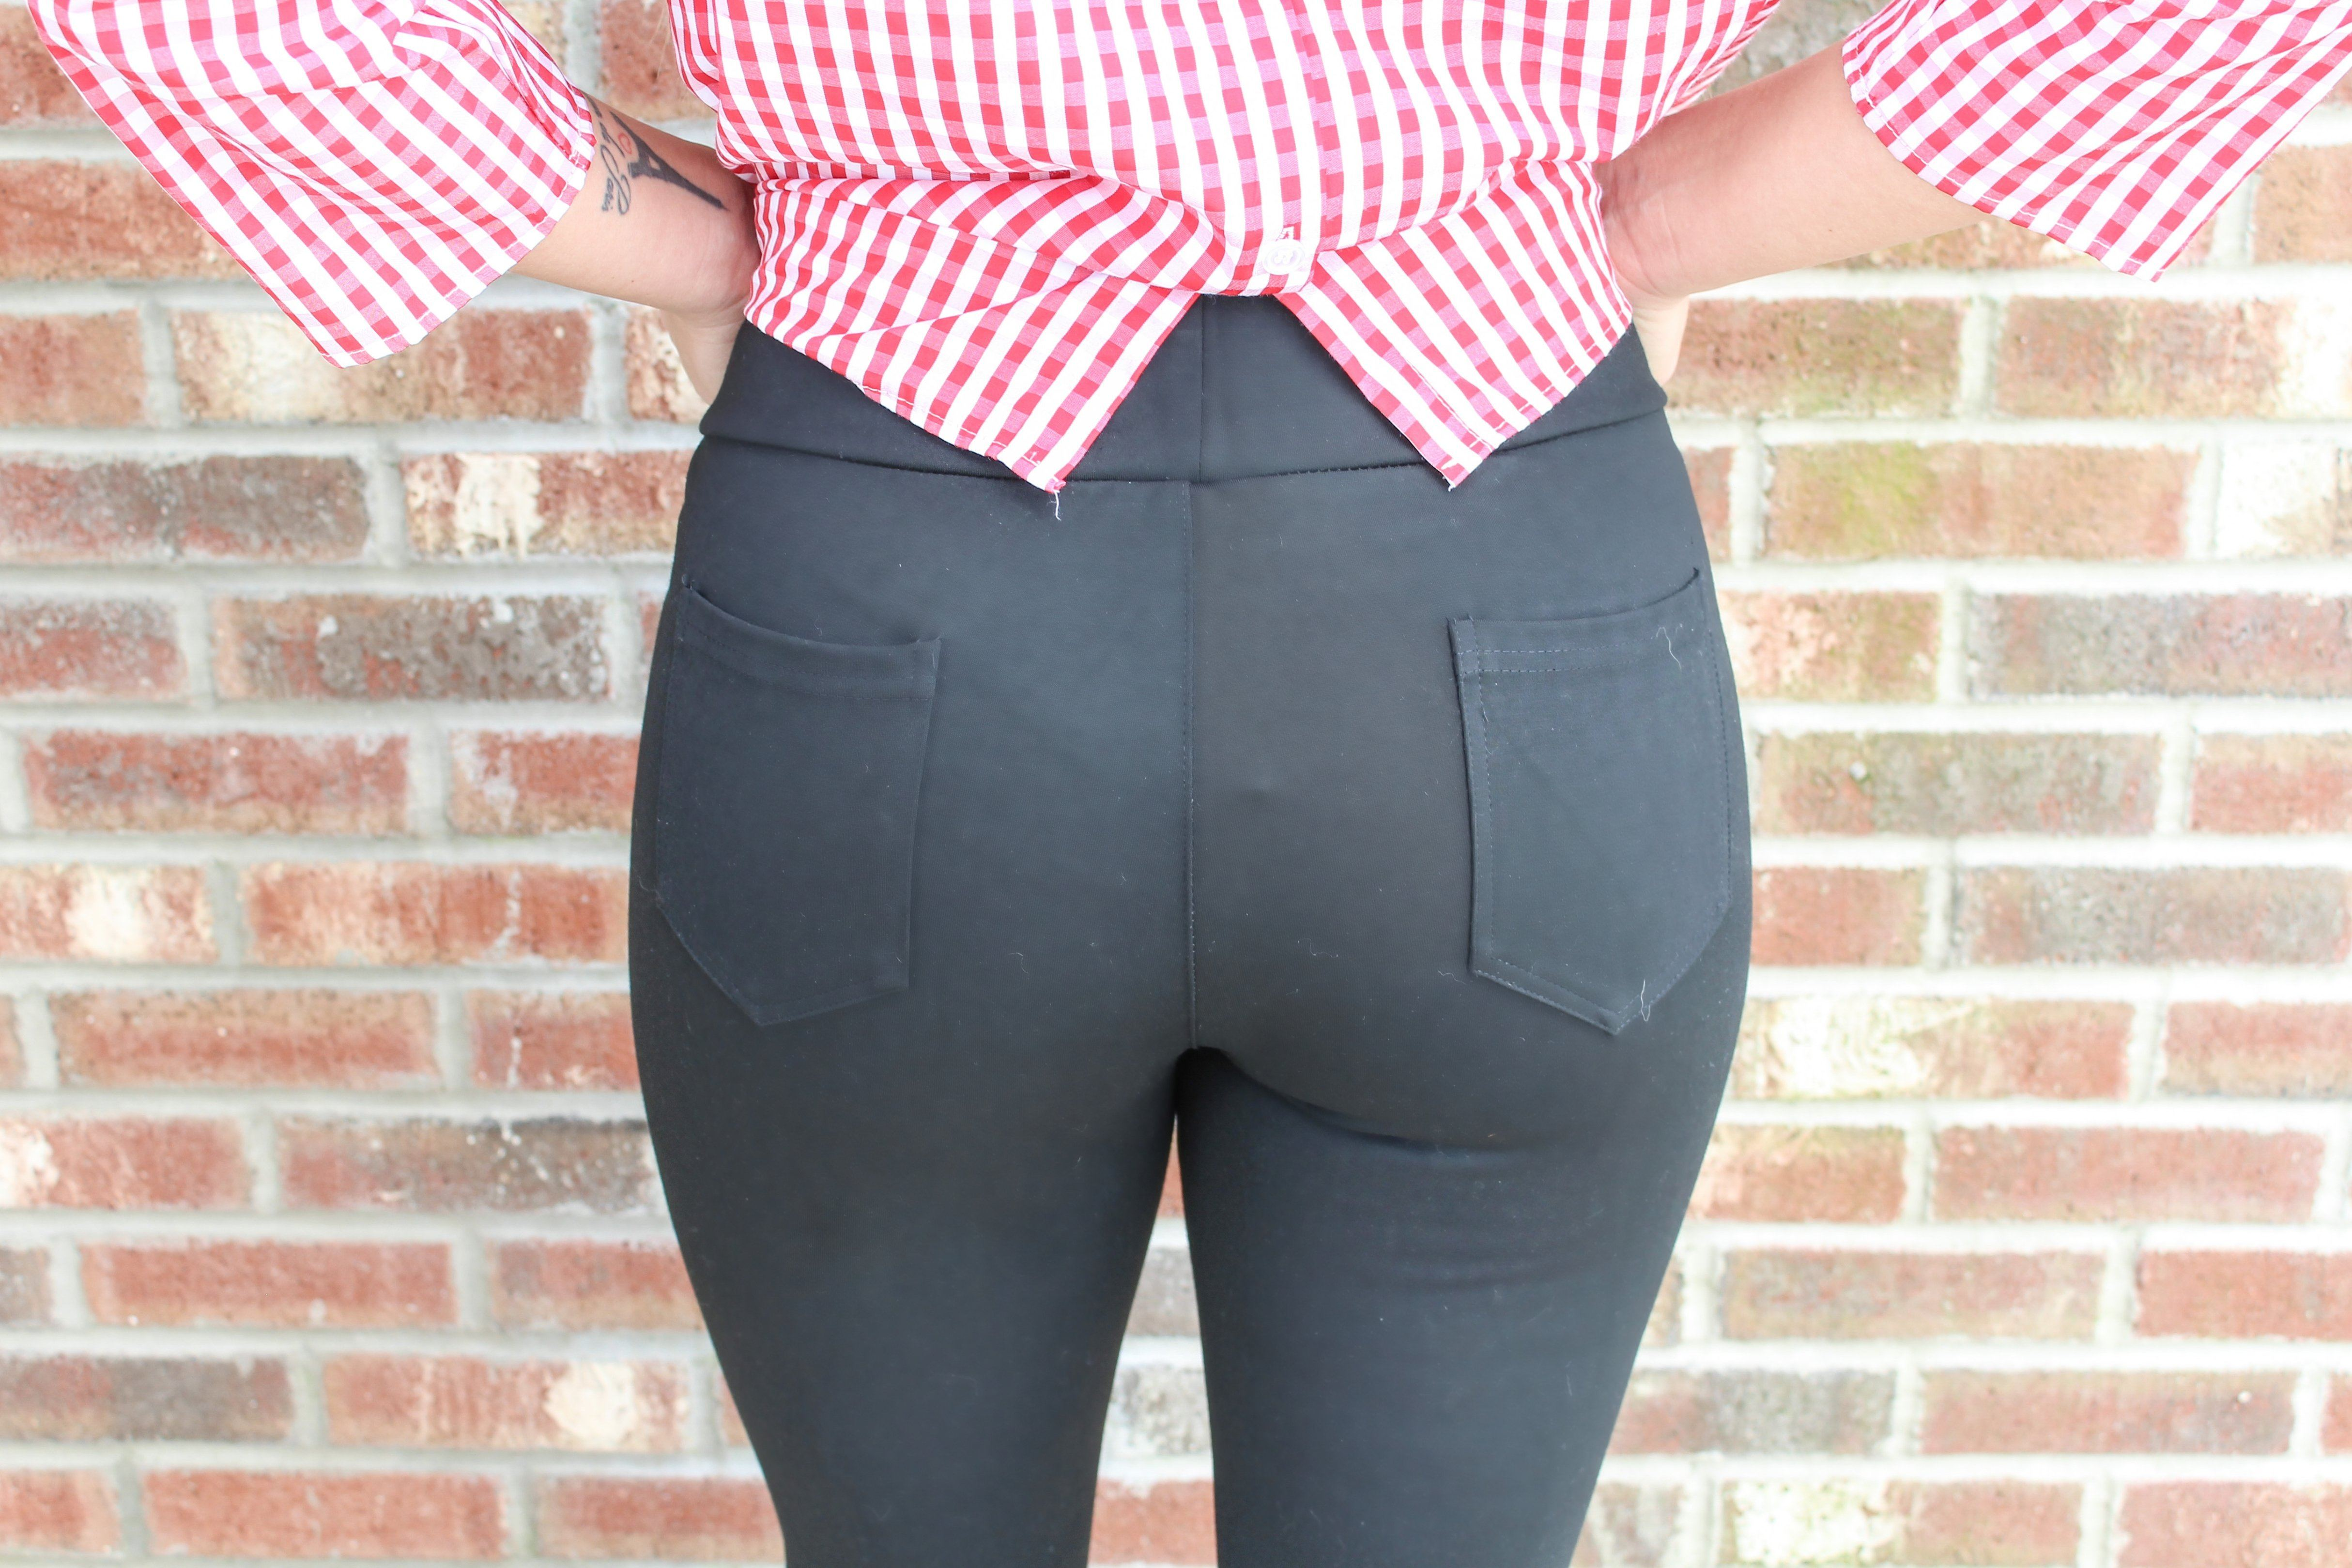 Black Skinny Jeggings With Zipper Pockets Bottoms